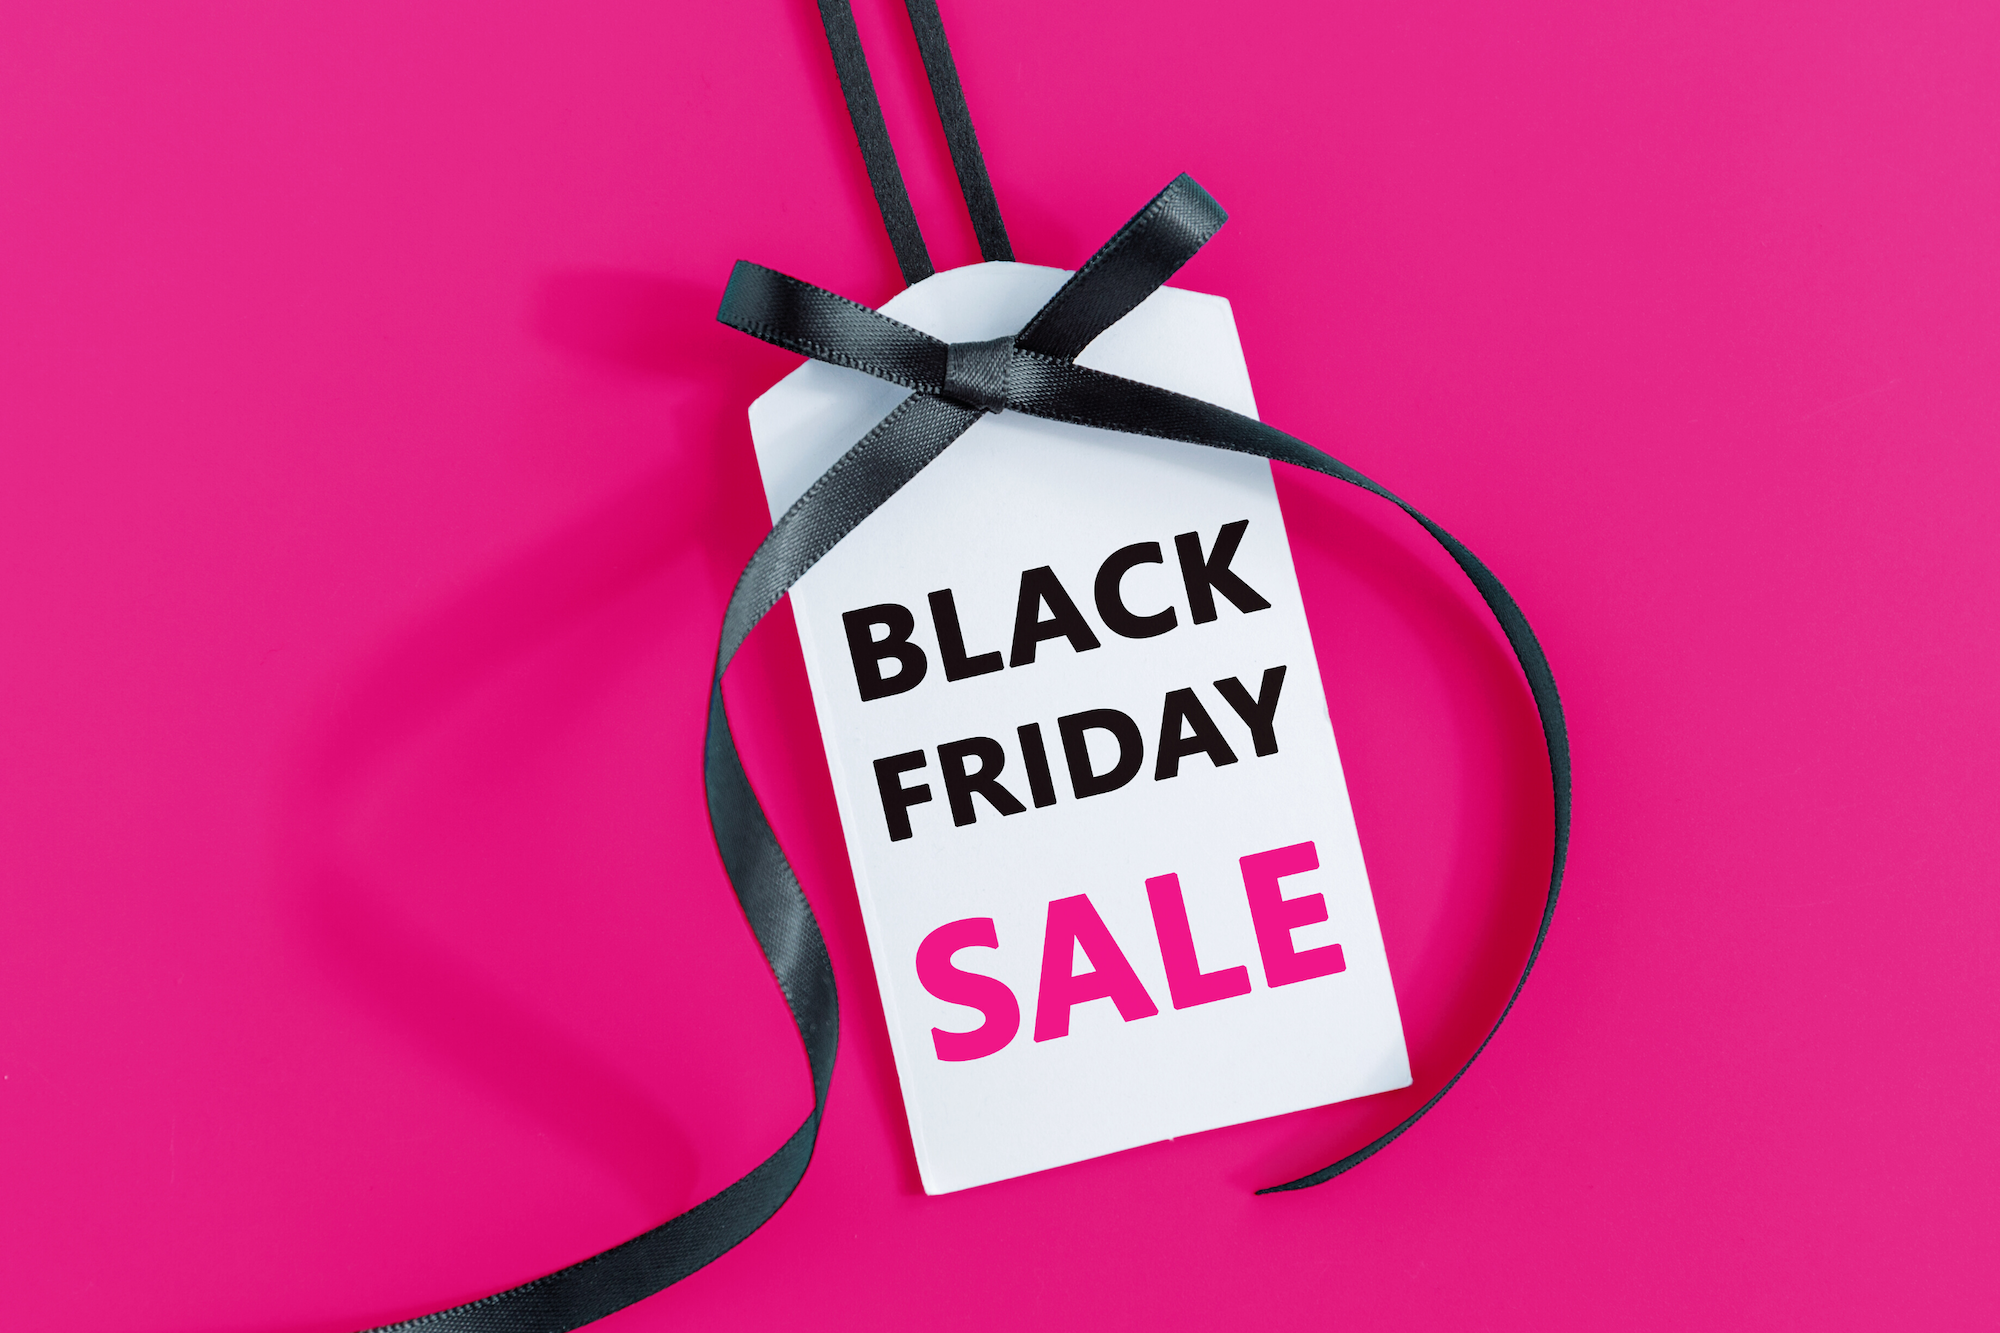 10 Black Friday Email Promo Ideas You Can Steal